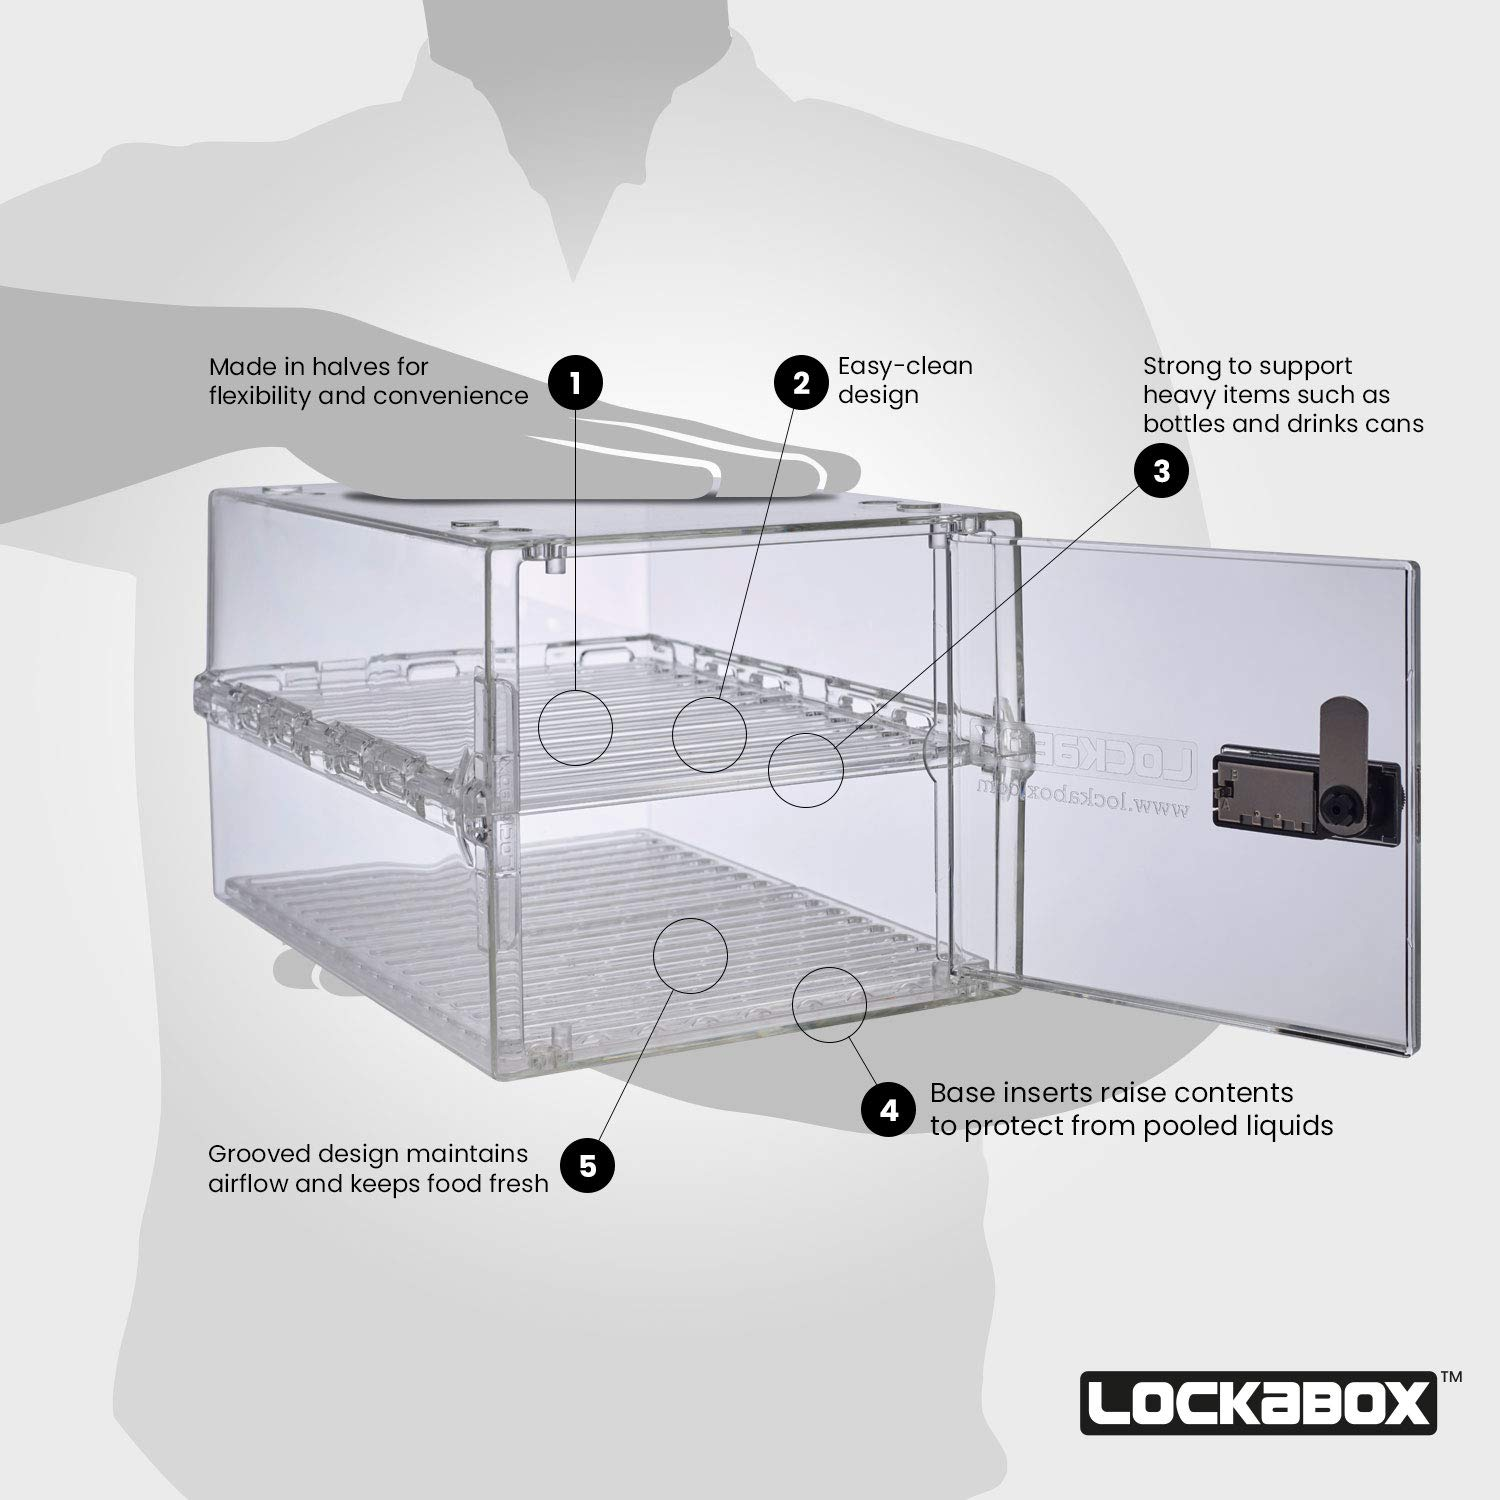 Removable shelves and base inserts for increased flexibility and hygiene Lockabox One Shelf Pack